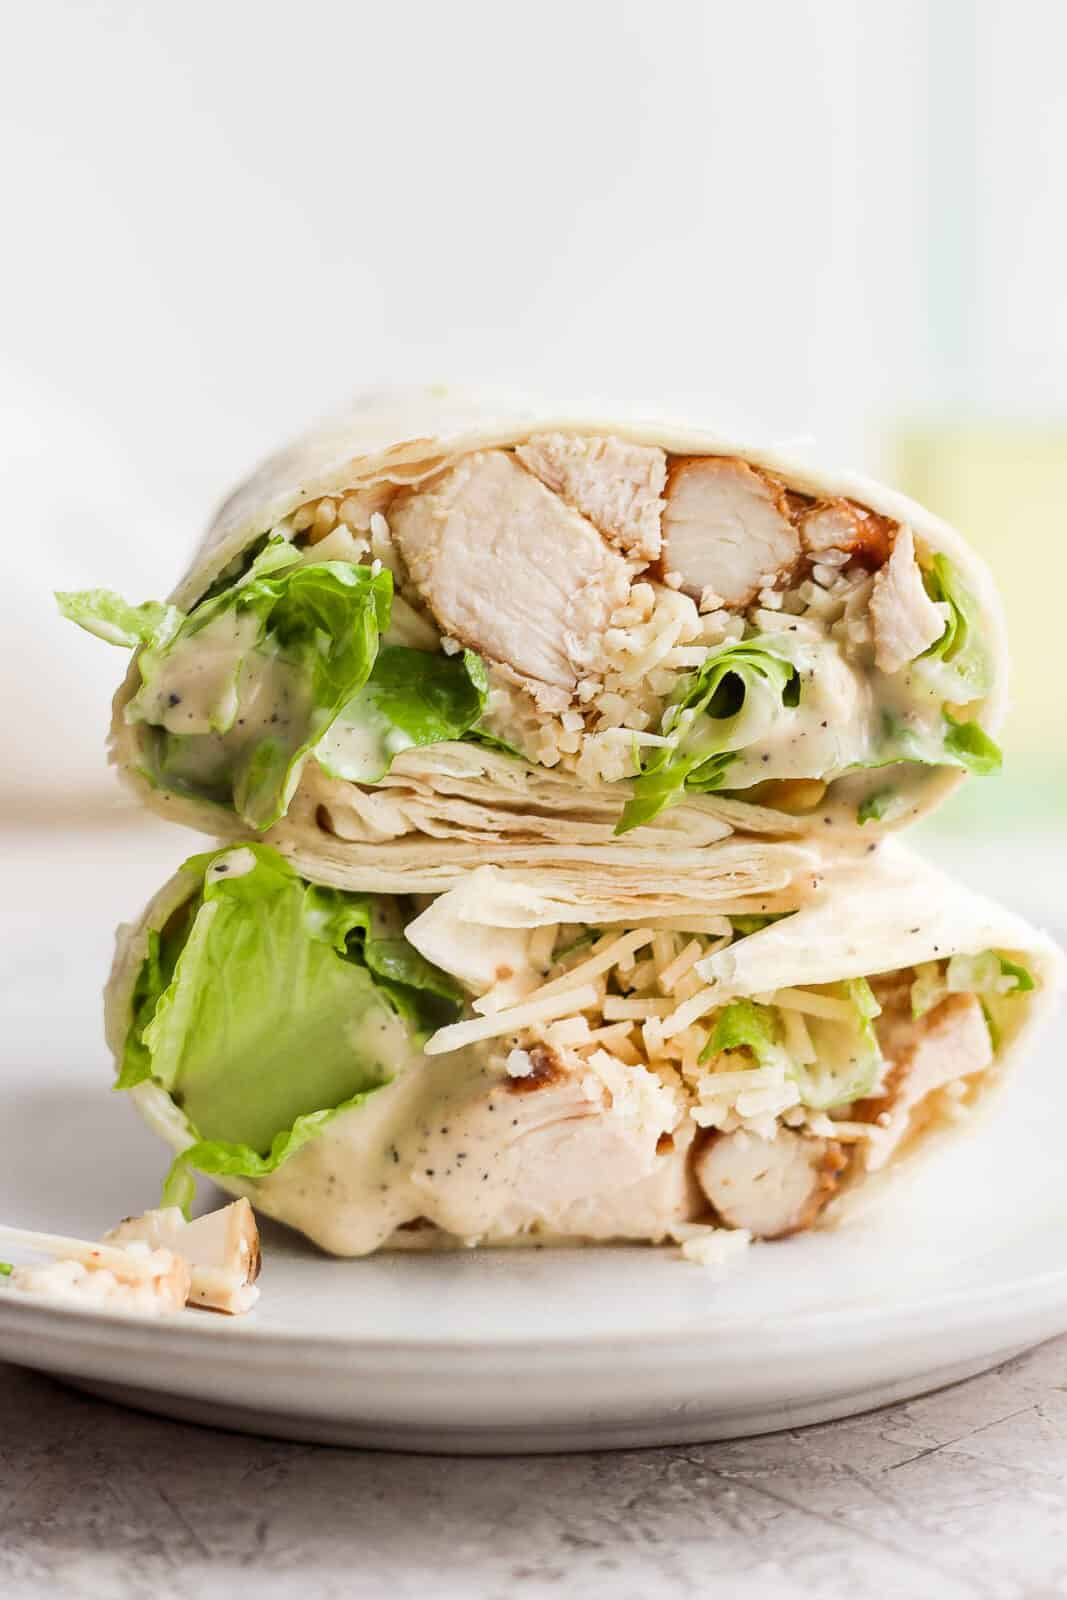 Two halves of a chicken caesar wrap on a plate.